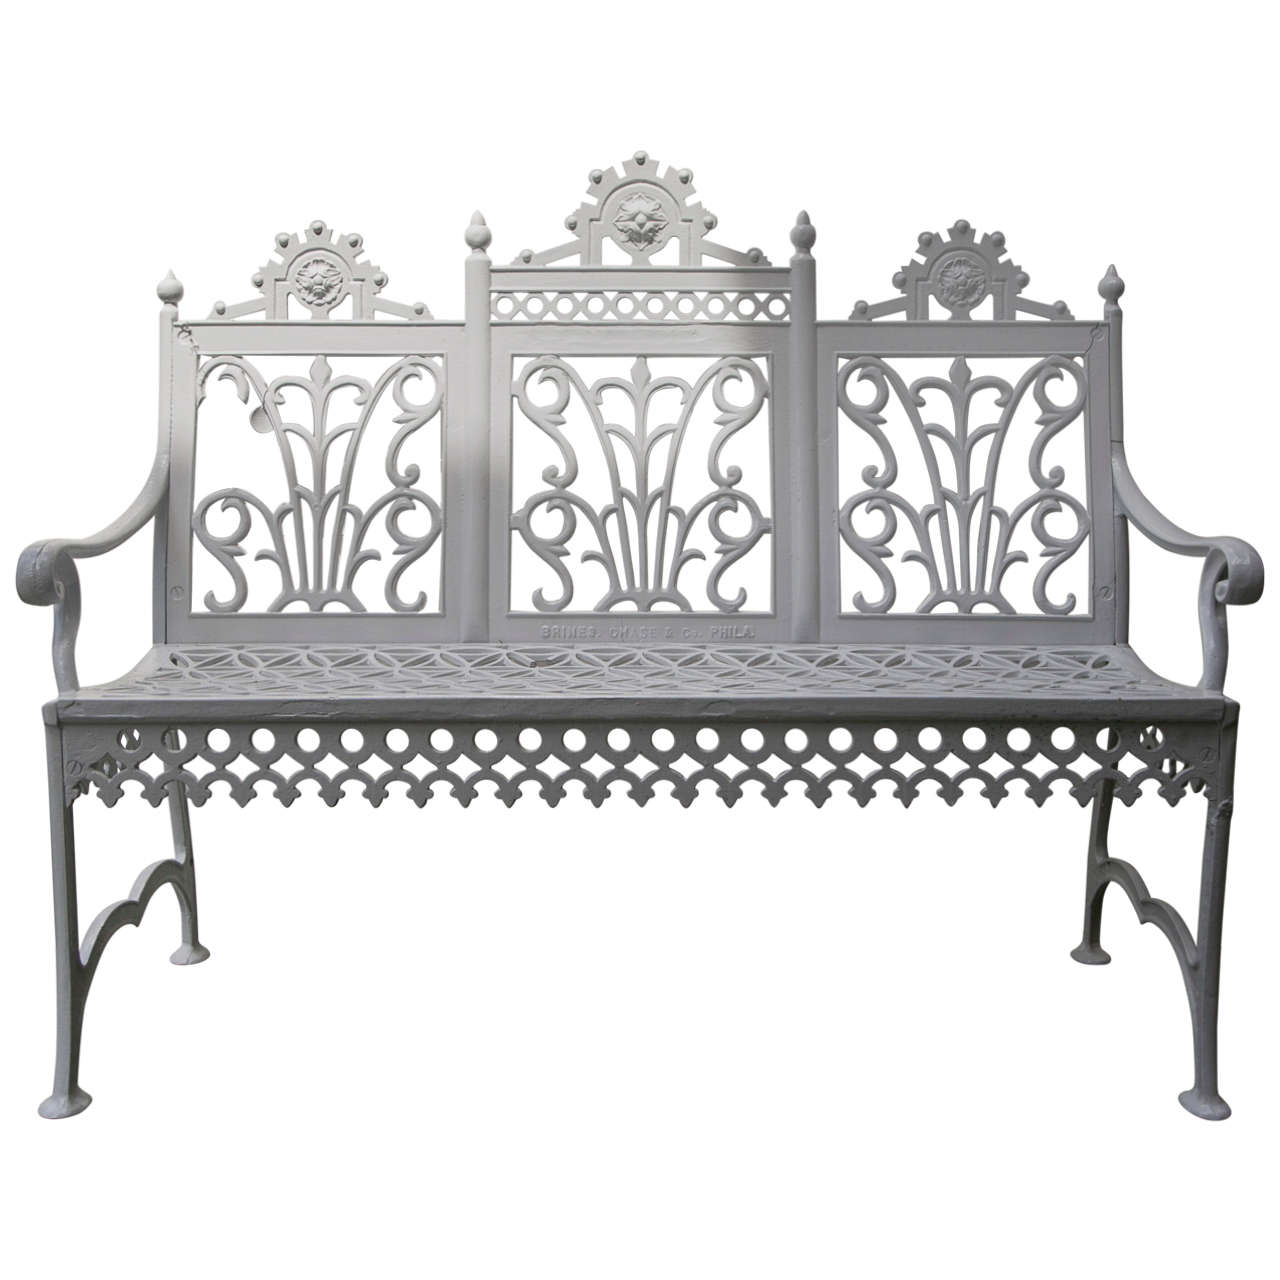 Victorian Era Cast Iron Curtain Design Garden Settee